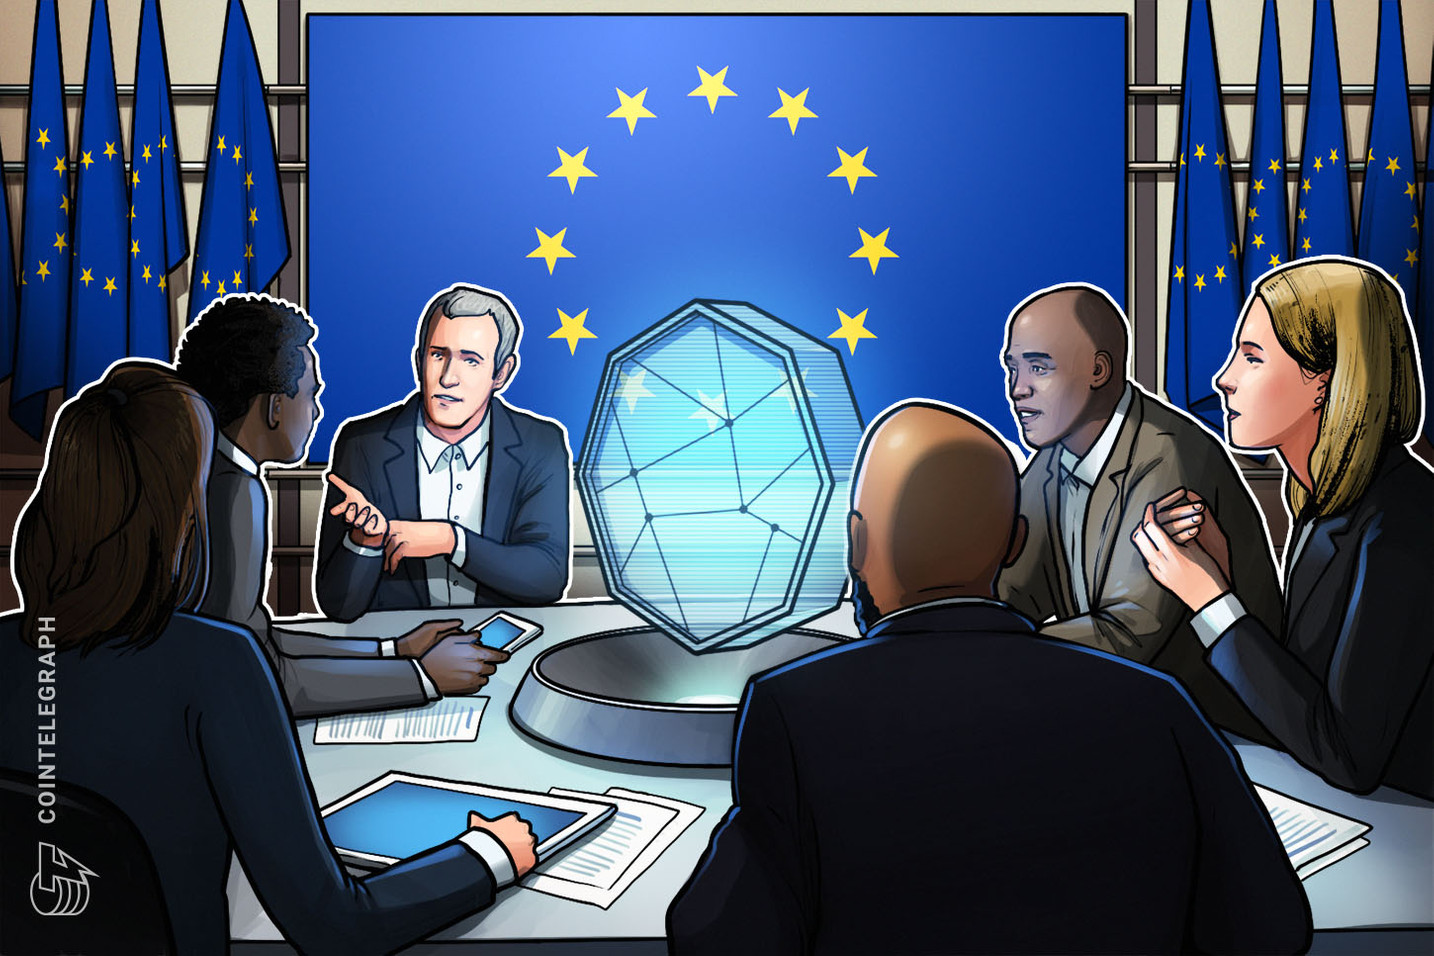 Banco Central Europeo: las stablecoins son vulnerables a la incertidumbre regulatoria